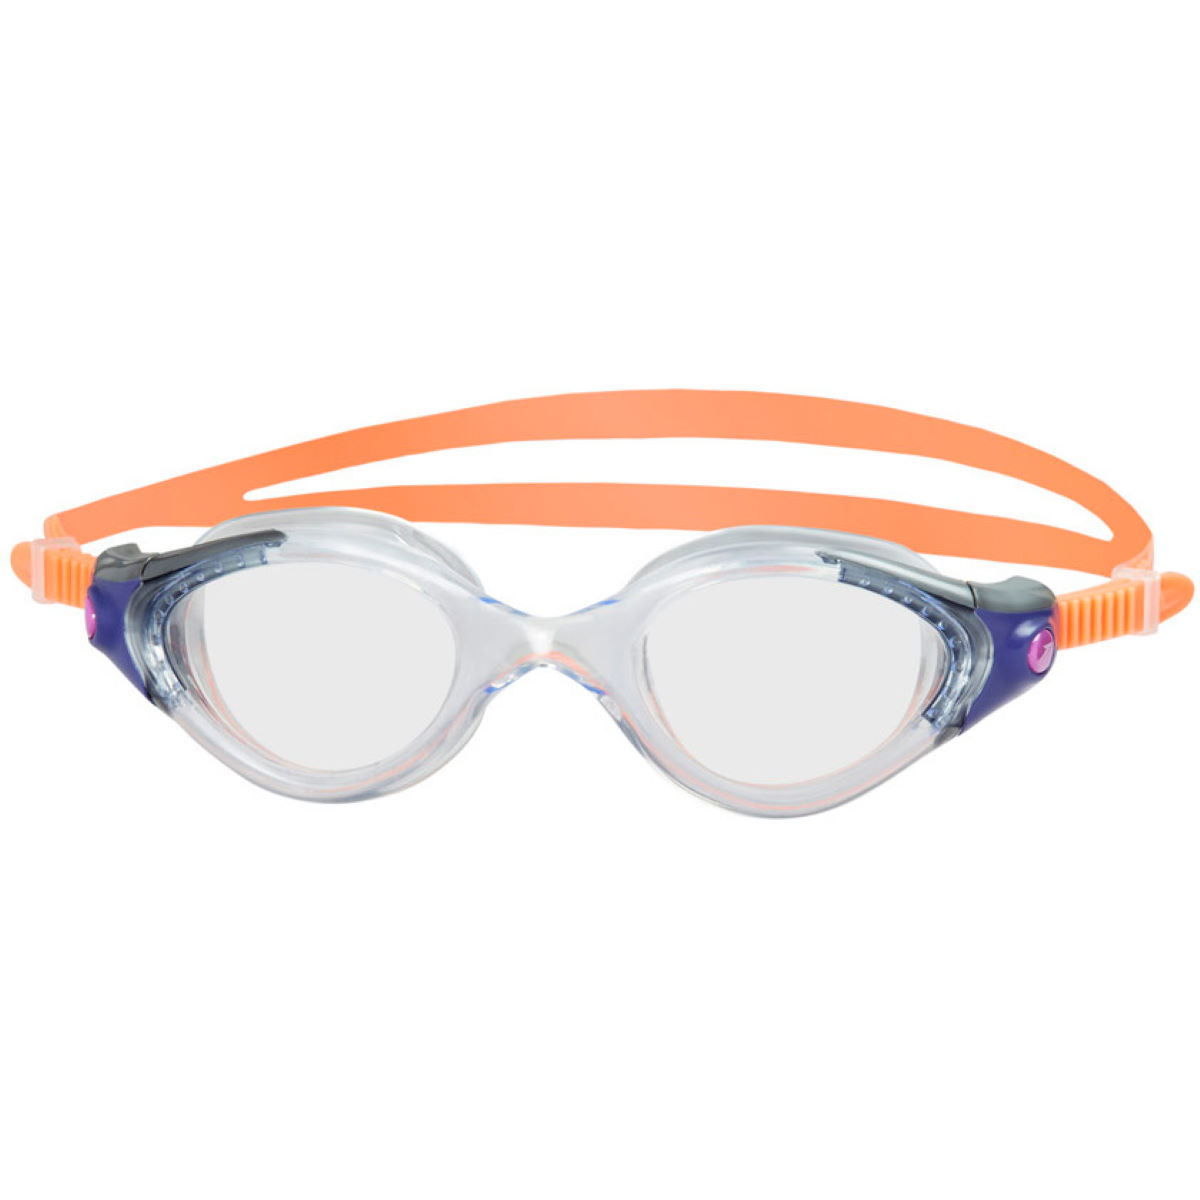 Speedo Vanquisher Goggles Speedo is one of the superpowers when it comes to equipment for swimmers. Over the years they have had countless Olympic and World champions in their roster, from Michael Phelps (his very first sponsorship), Nathan Adrian, Missy Franklin, Florent Manaudou, and .